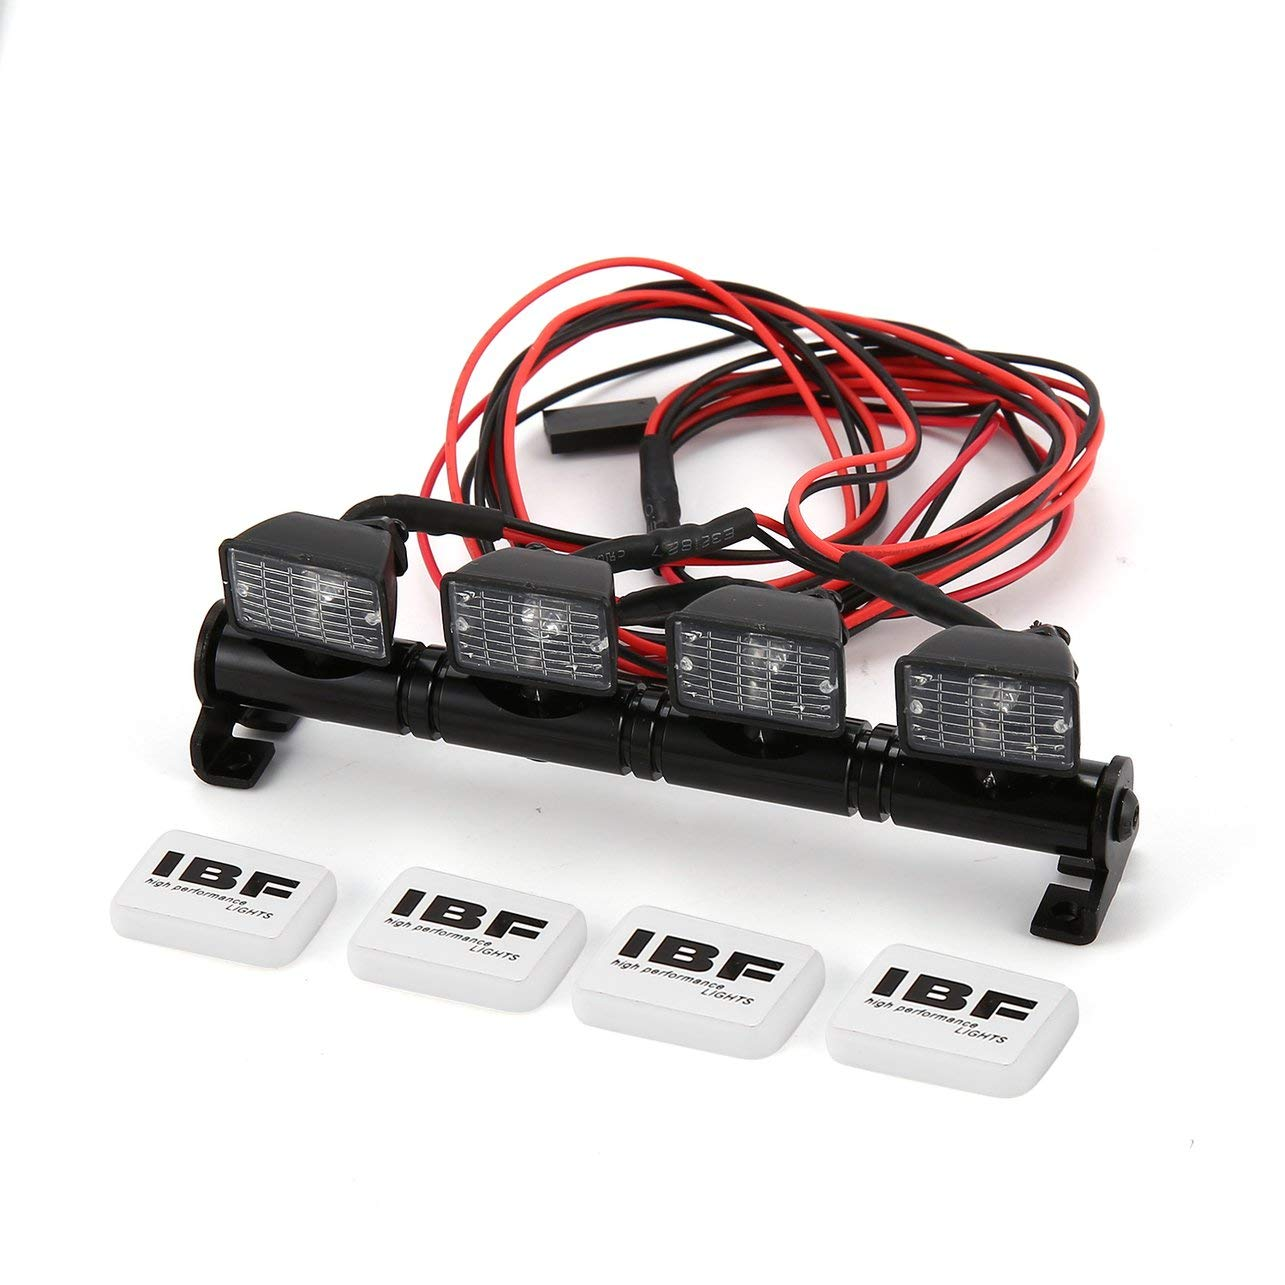 Square Roof Light Bar LED Lamp Bar RC Car Crawler Axial SCX10 D90 TRX-4, Black WOSOSYEYO